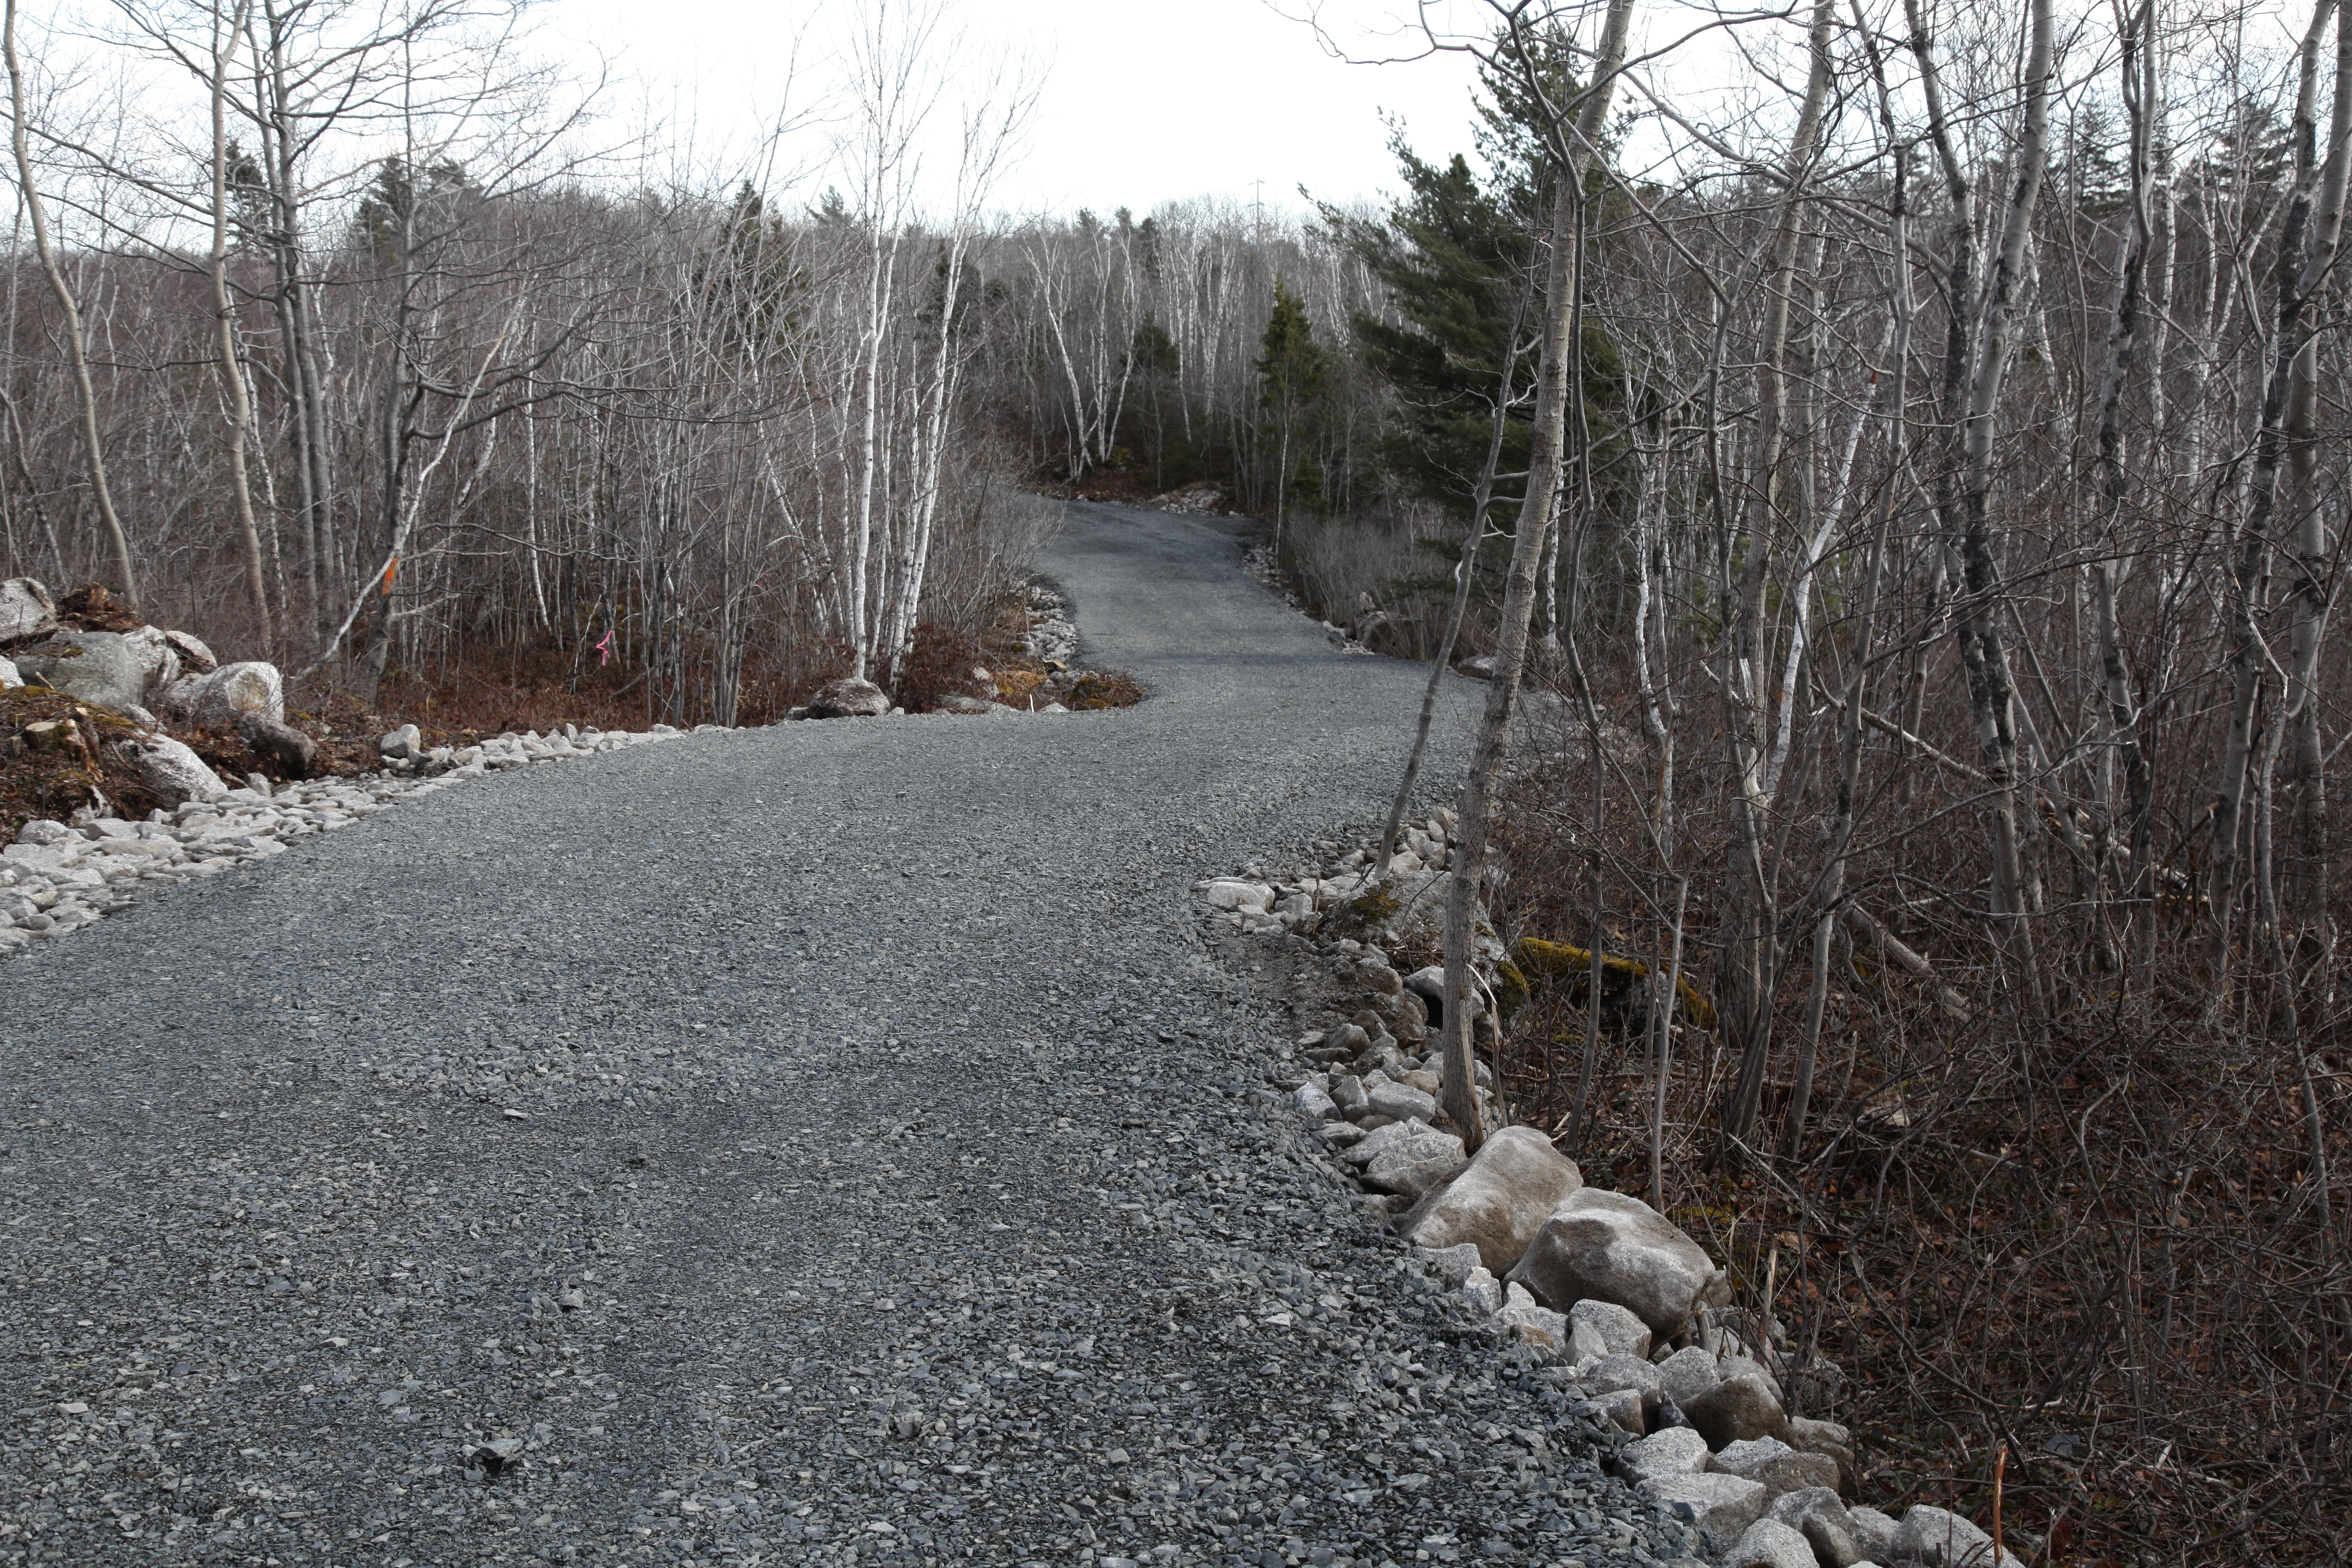 With an early spring work is progressing fast on the new trails at Long Lake Provincial Park. When finished more then 5 kilms of stroller friendly trails will take people from the new parking lot off Northwest Arm Drive around Withrod lake and back.